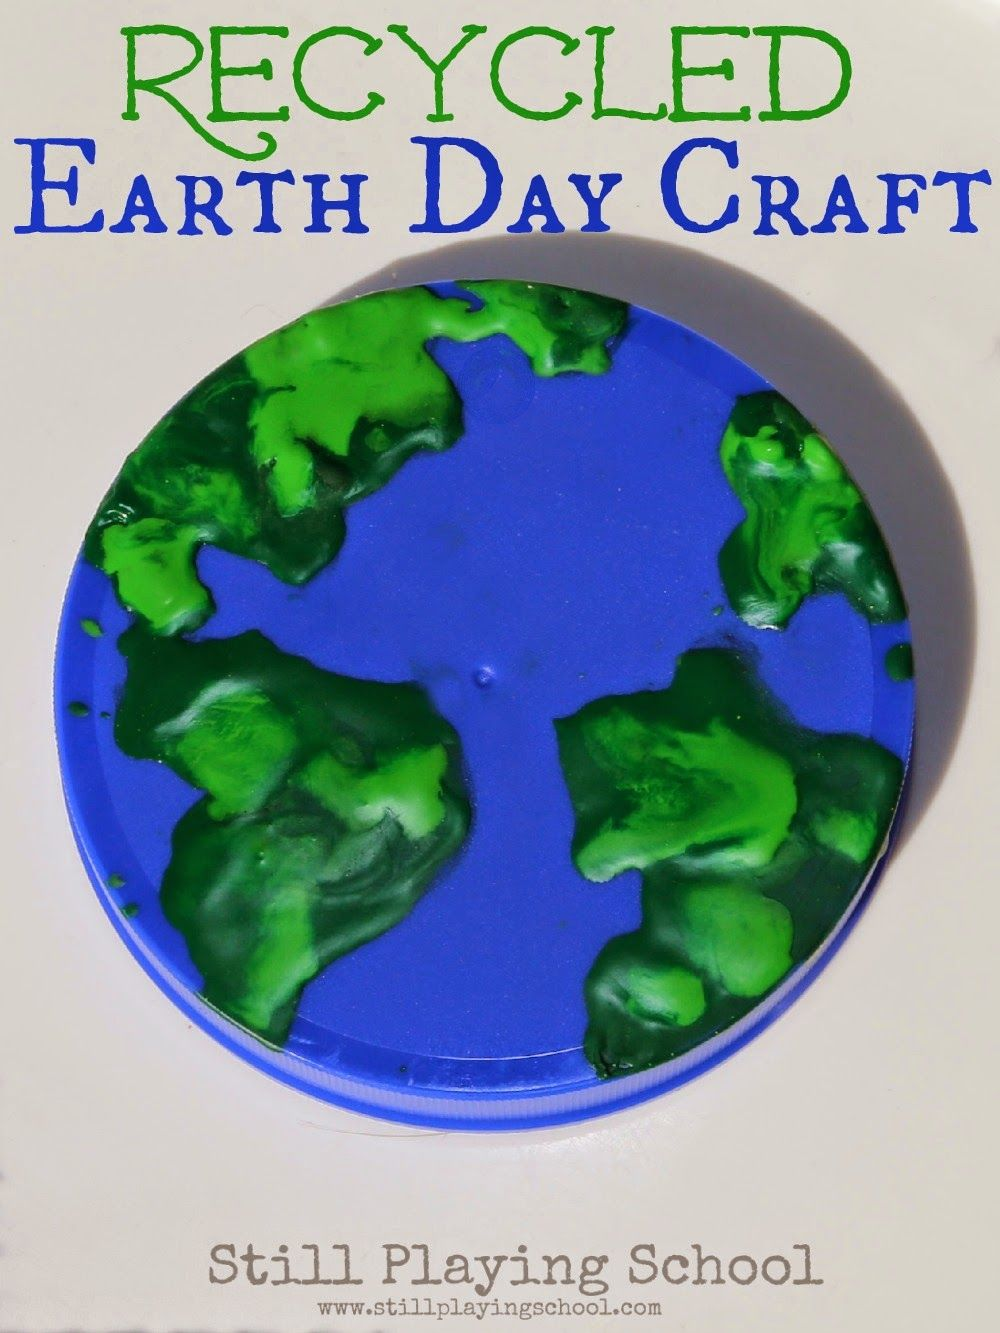 Recycled Earth Day Craft Earth Day Crafts Earth Day Planet Crafts